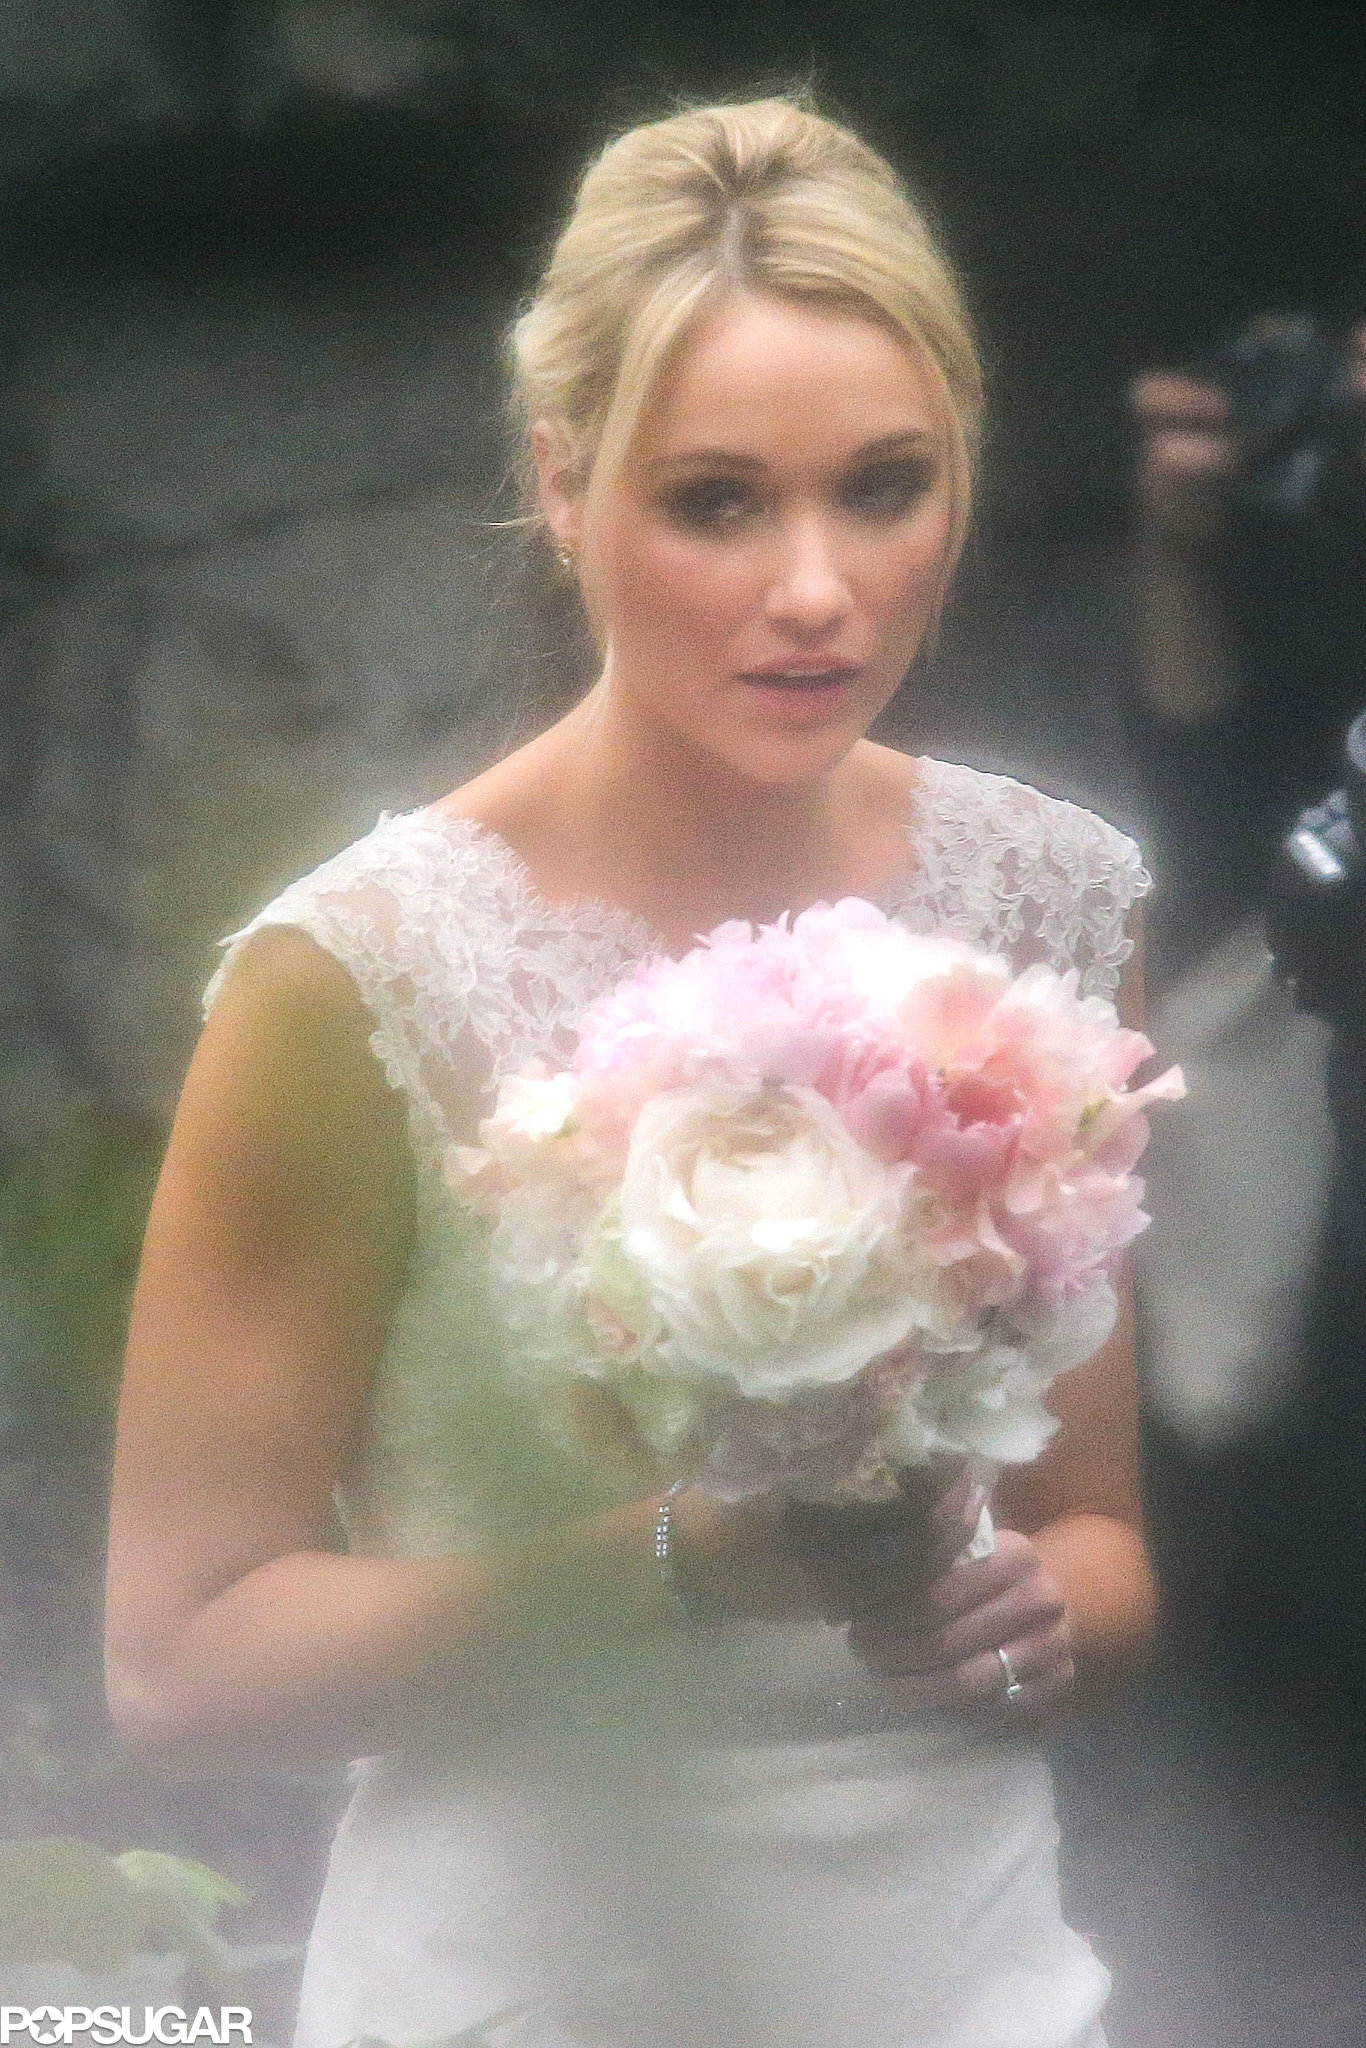 Katrina Bowden walked down the aisle in a white lace wedding gown.